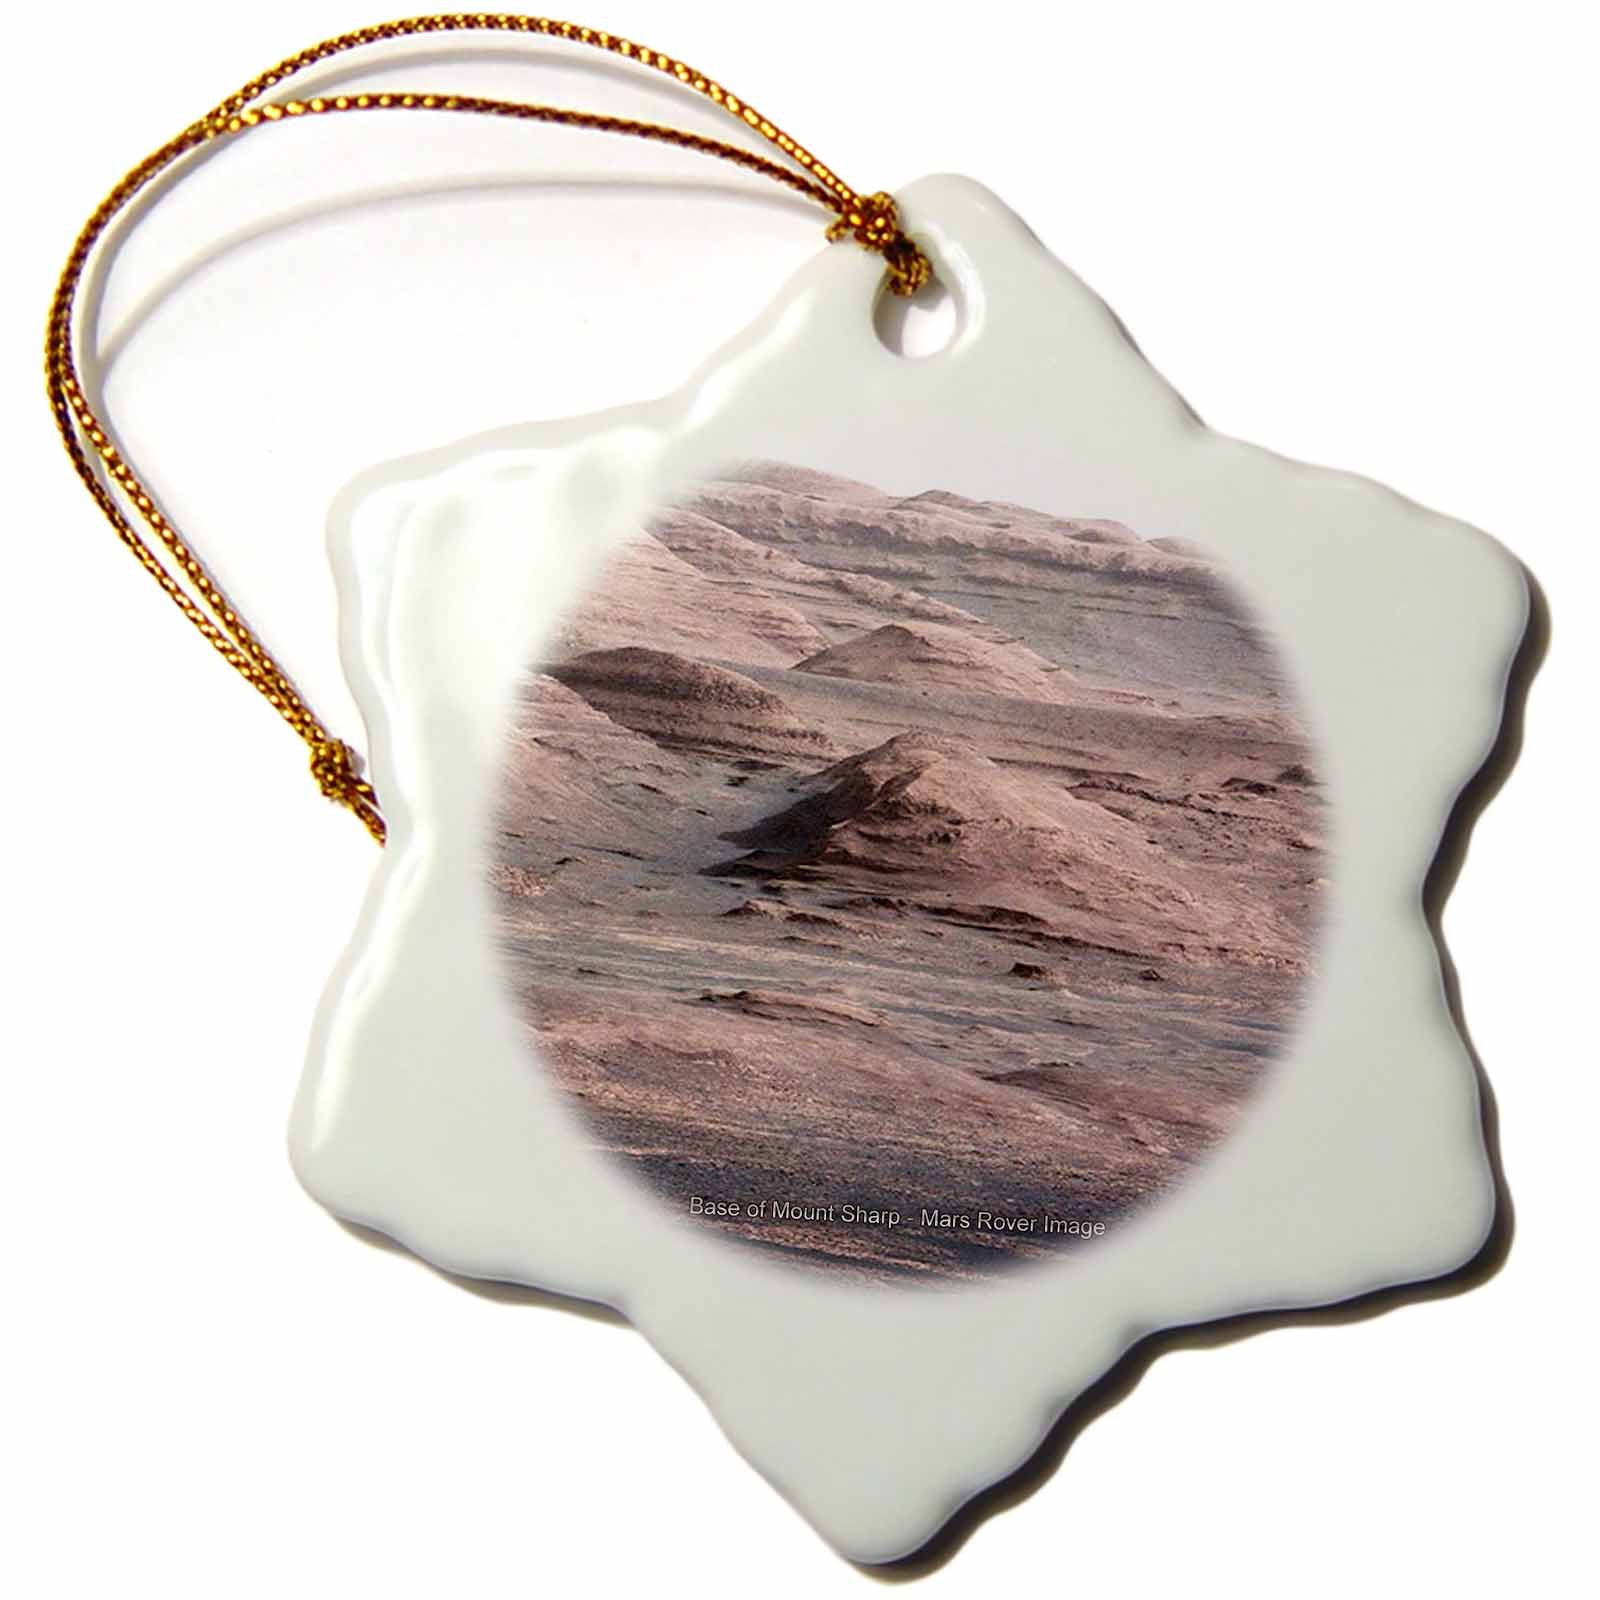 3dRose orn_76835_1 Solar System Base of Mount Sharp Mars Rover Image Snowflake Porcelain Ornament, 3-Inch